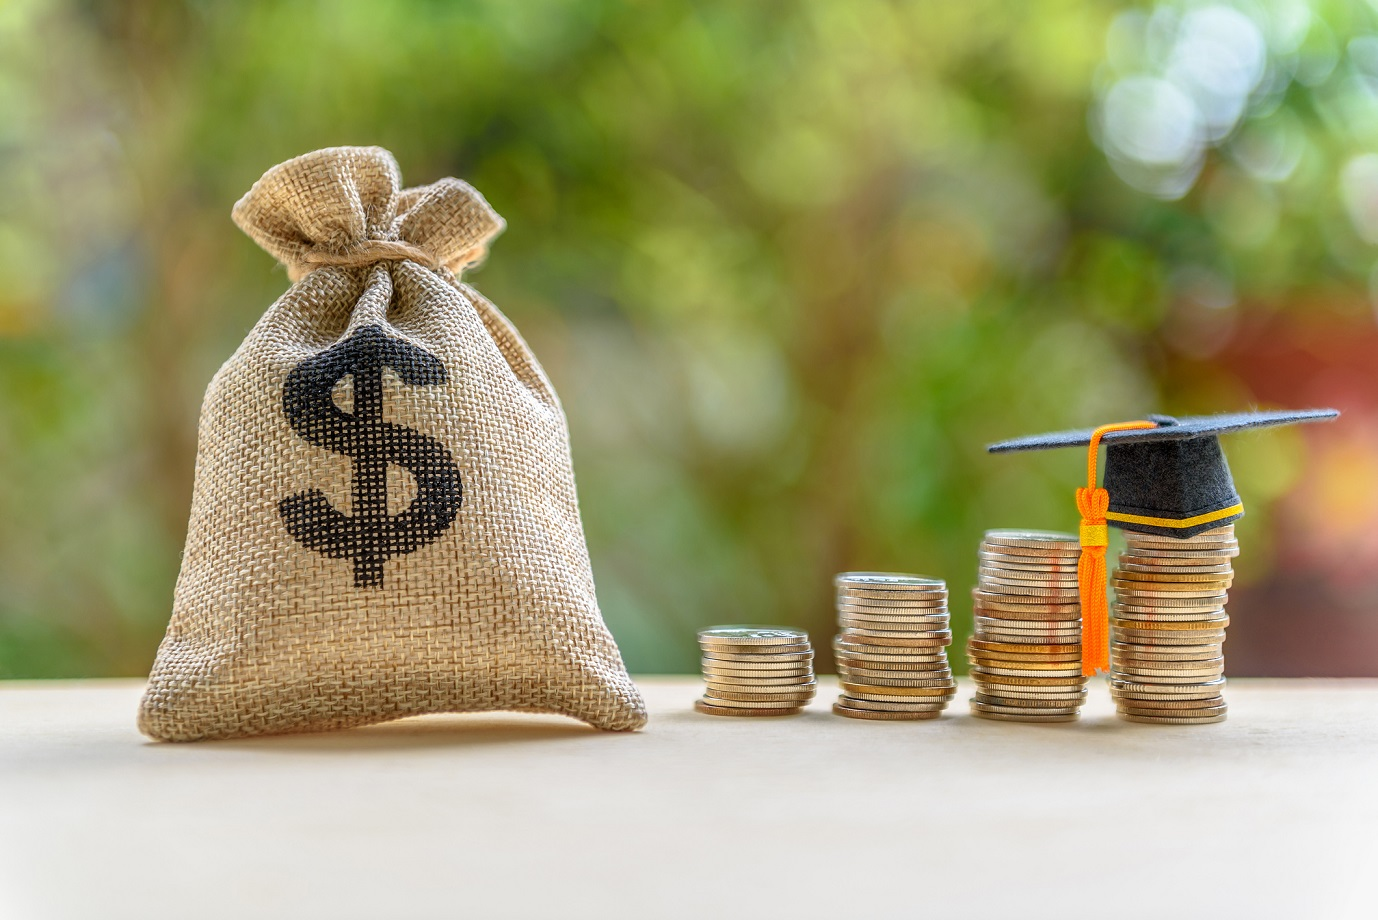 A bag with a dollar sign on it sits next to stacks of coins with a graduation cap at the top.